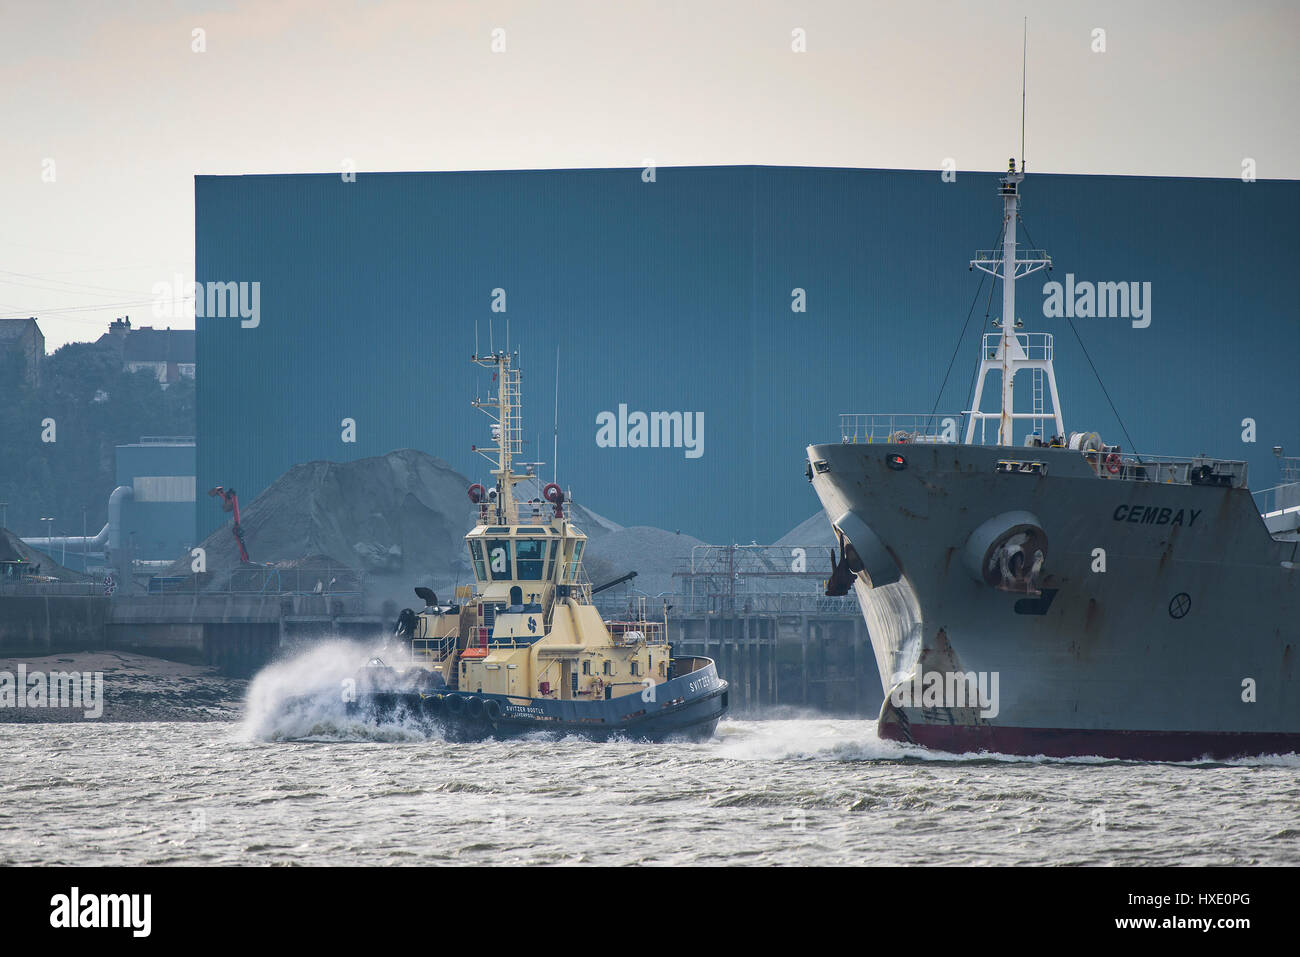 Ships Tug Vessels Svitzer Bootle Assisting Cembay River Thames Steaming Downriver Transport Working - Stock Image